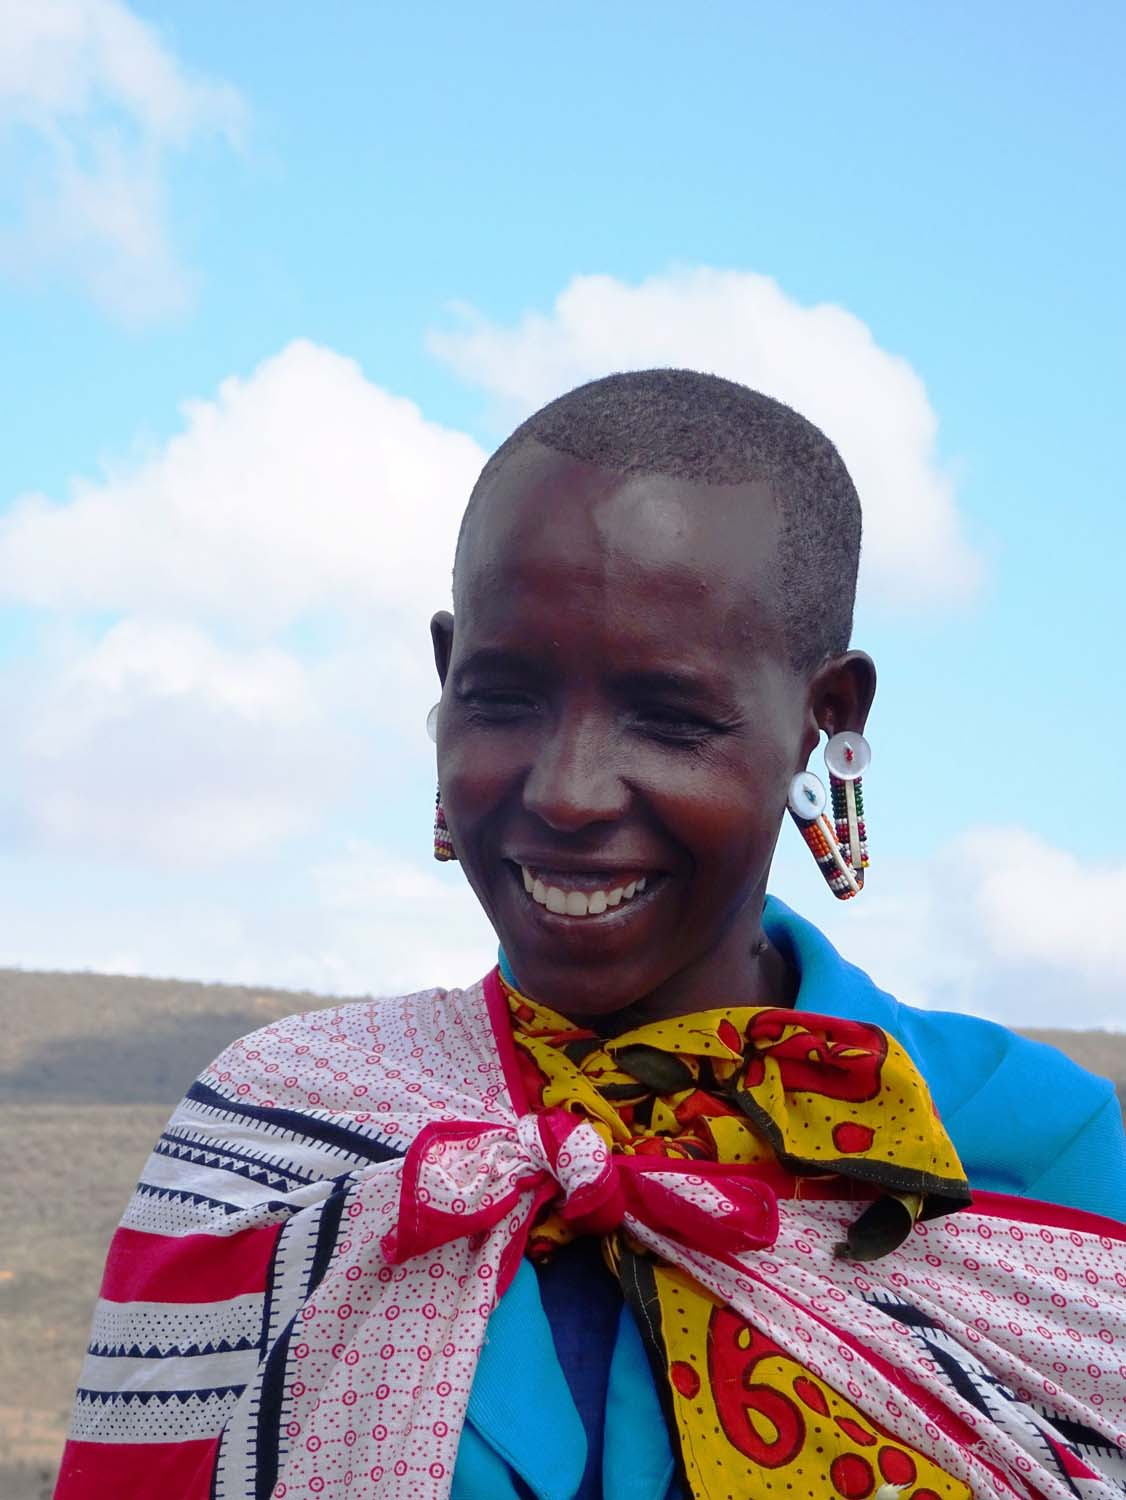 one of the sisters of our Masaai guides, it is very common for both men and women to have this type of ear decorations